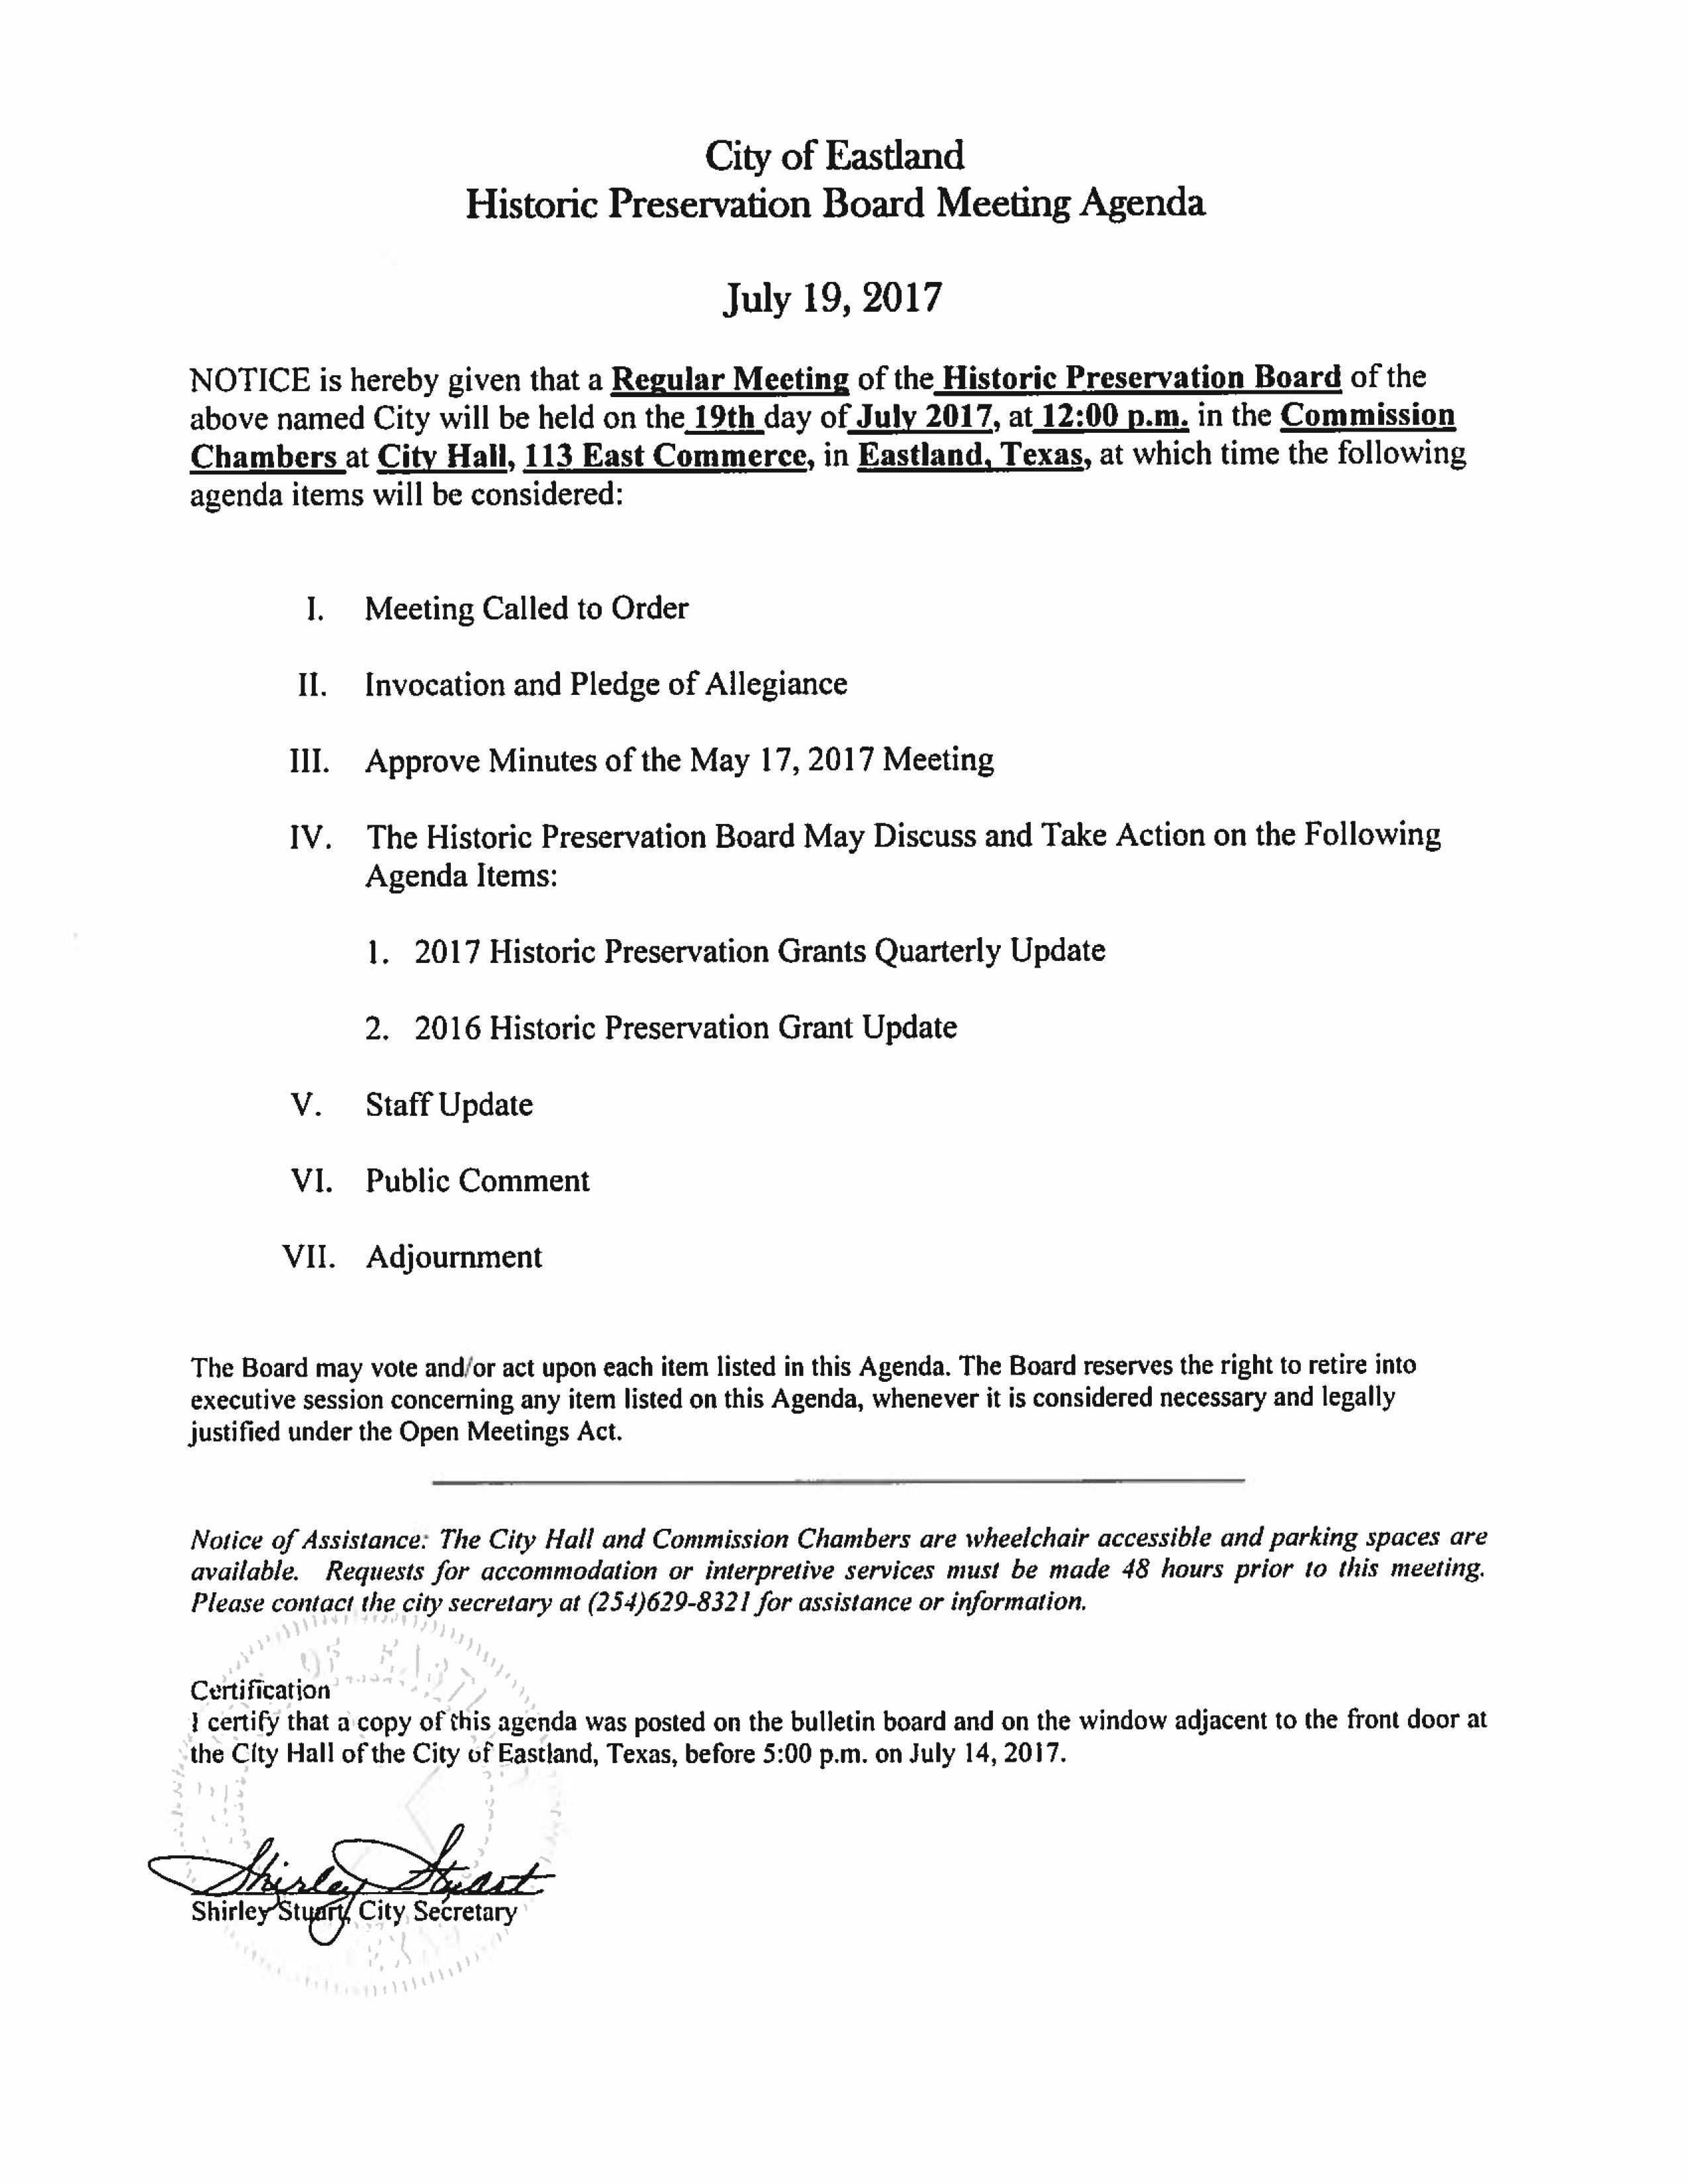 Historic Preservation Board Meeting July 19 Eastland County Today